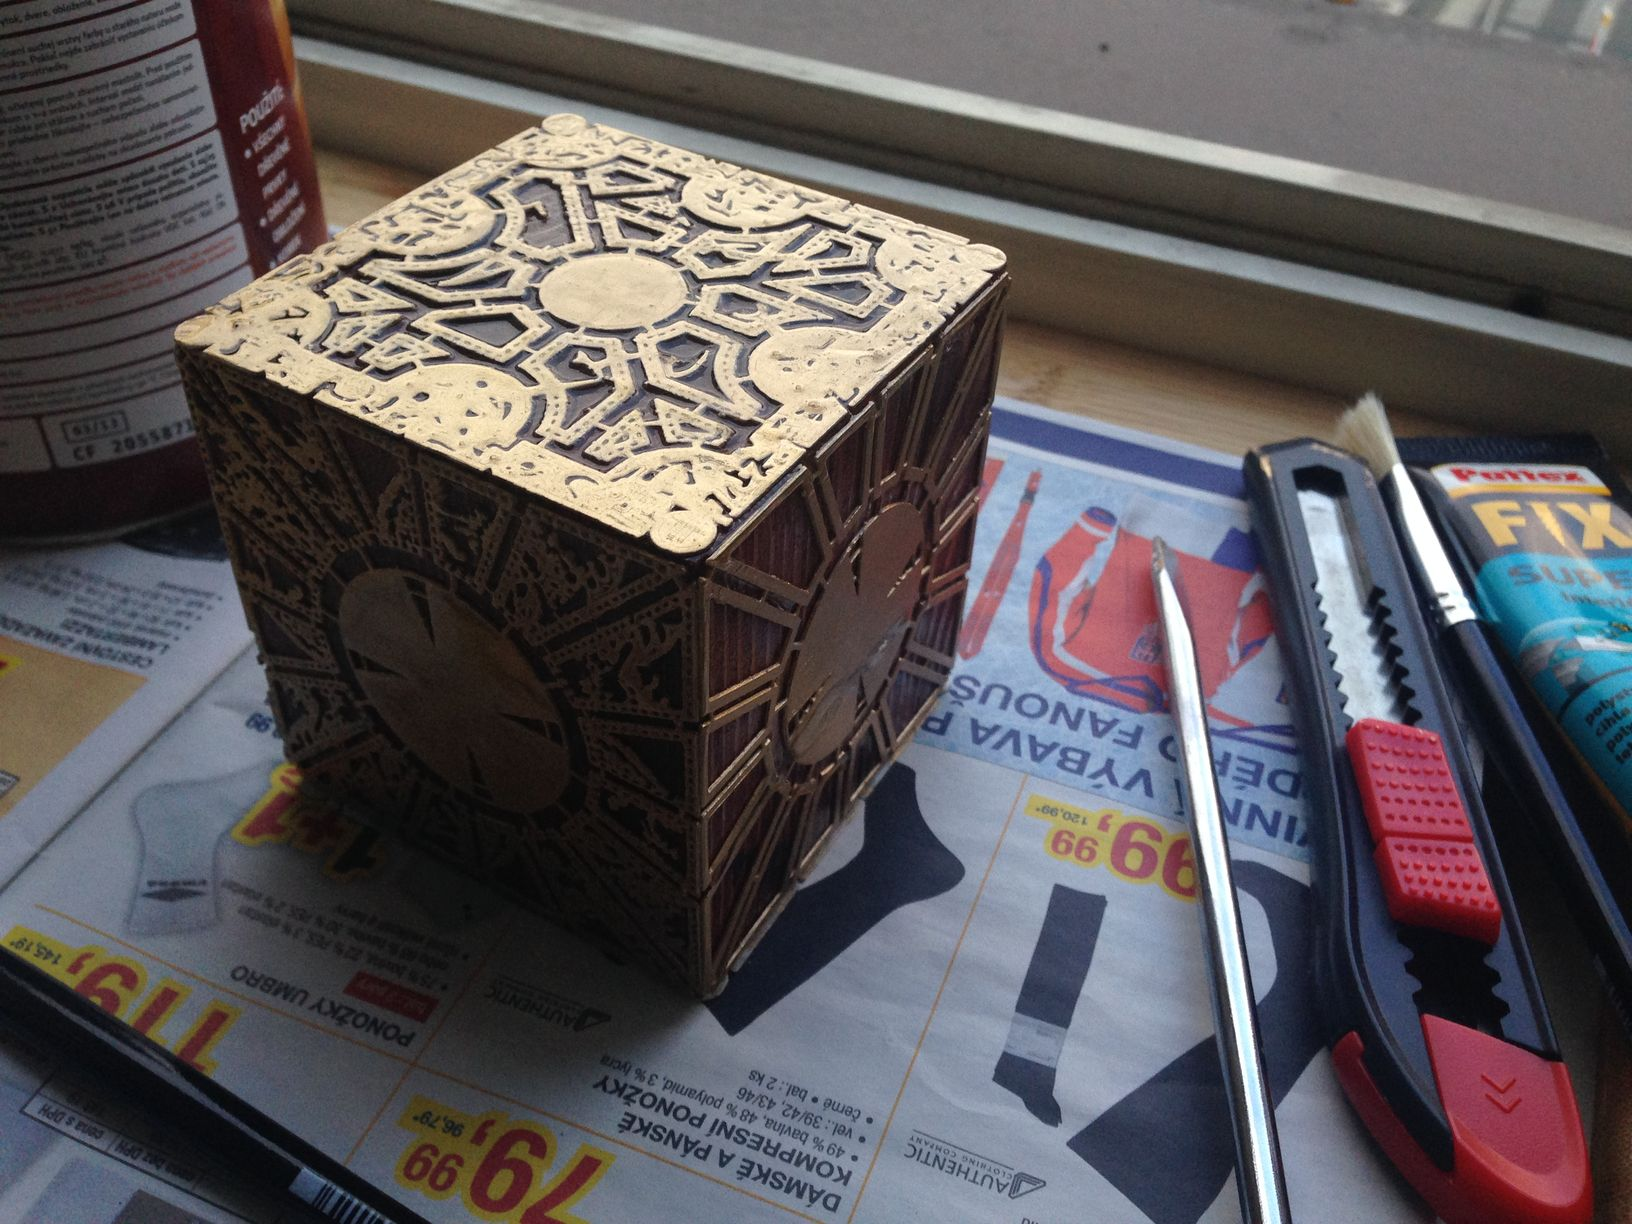 12.jpg Download free STL file The Lament Configuration (Hellraiser puzzle box) • 3D printable template, Mendelssohn